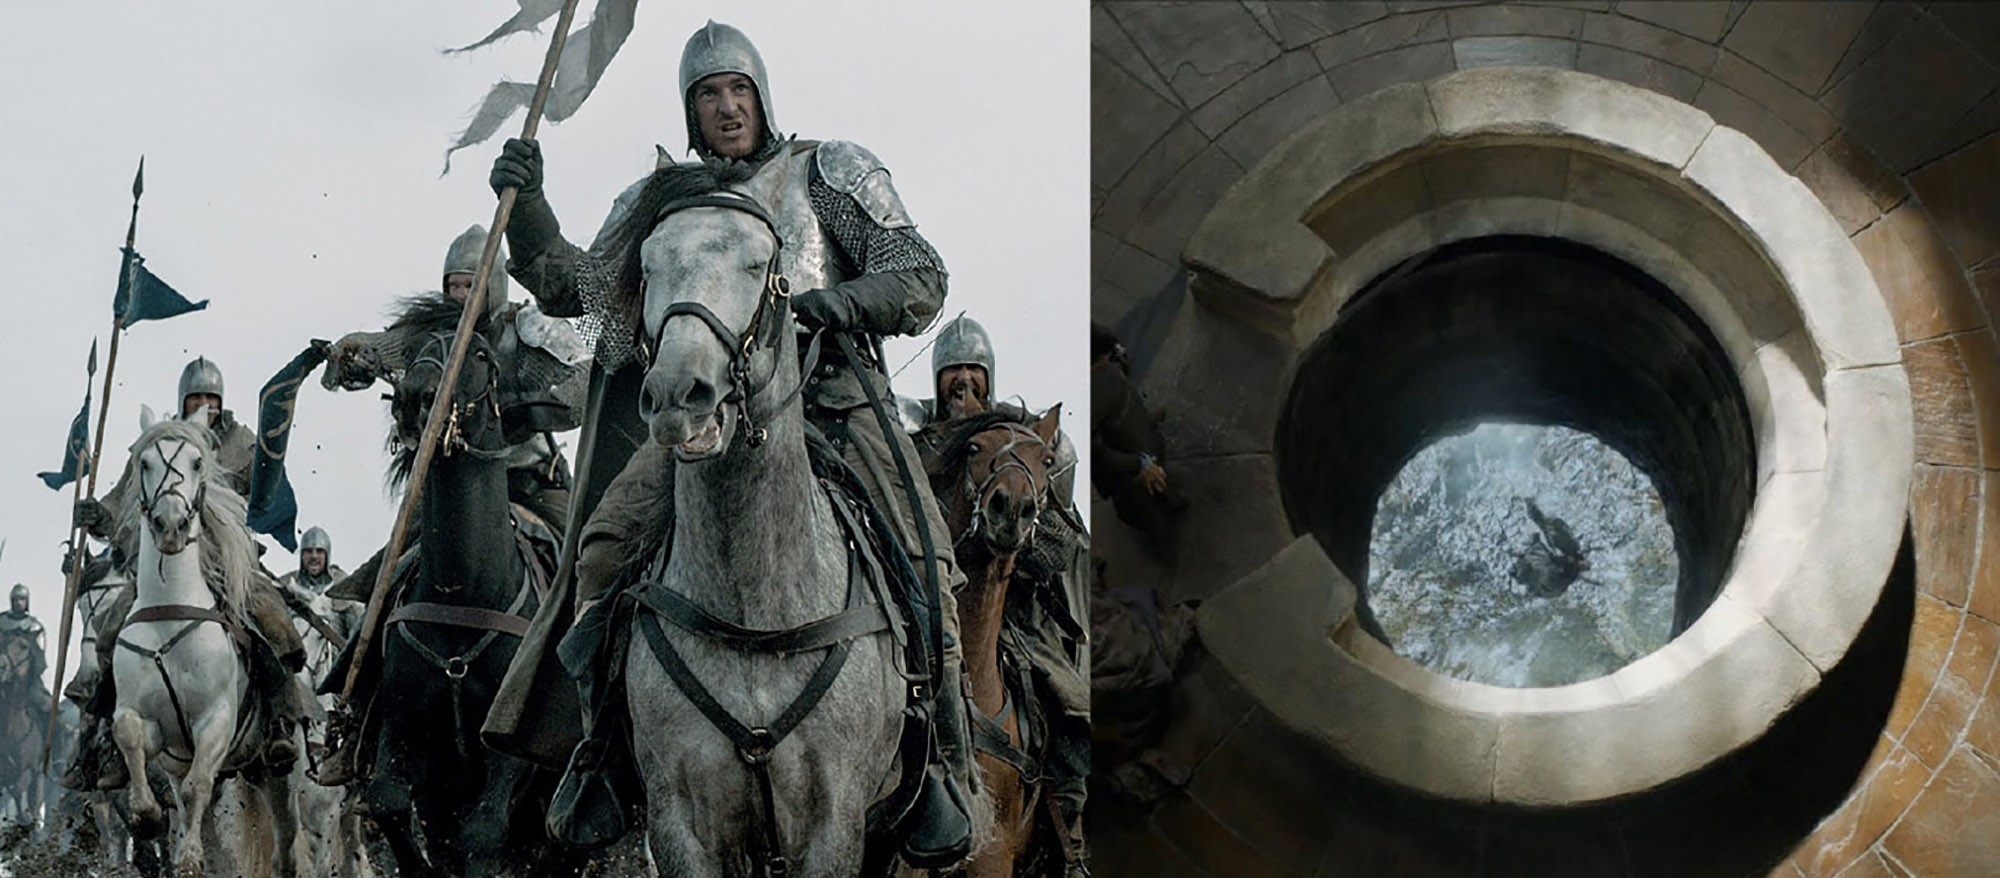 Collaboration isn't a pit; collaboration is a ladder. (Images: HBO)